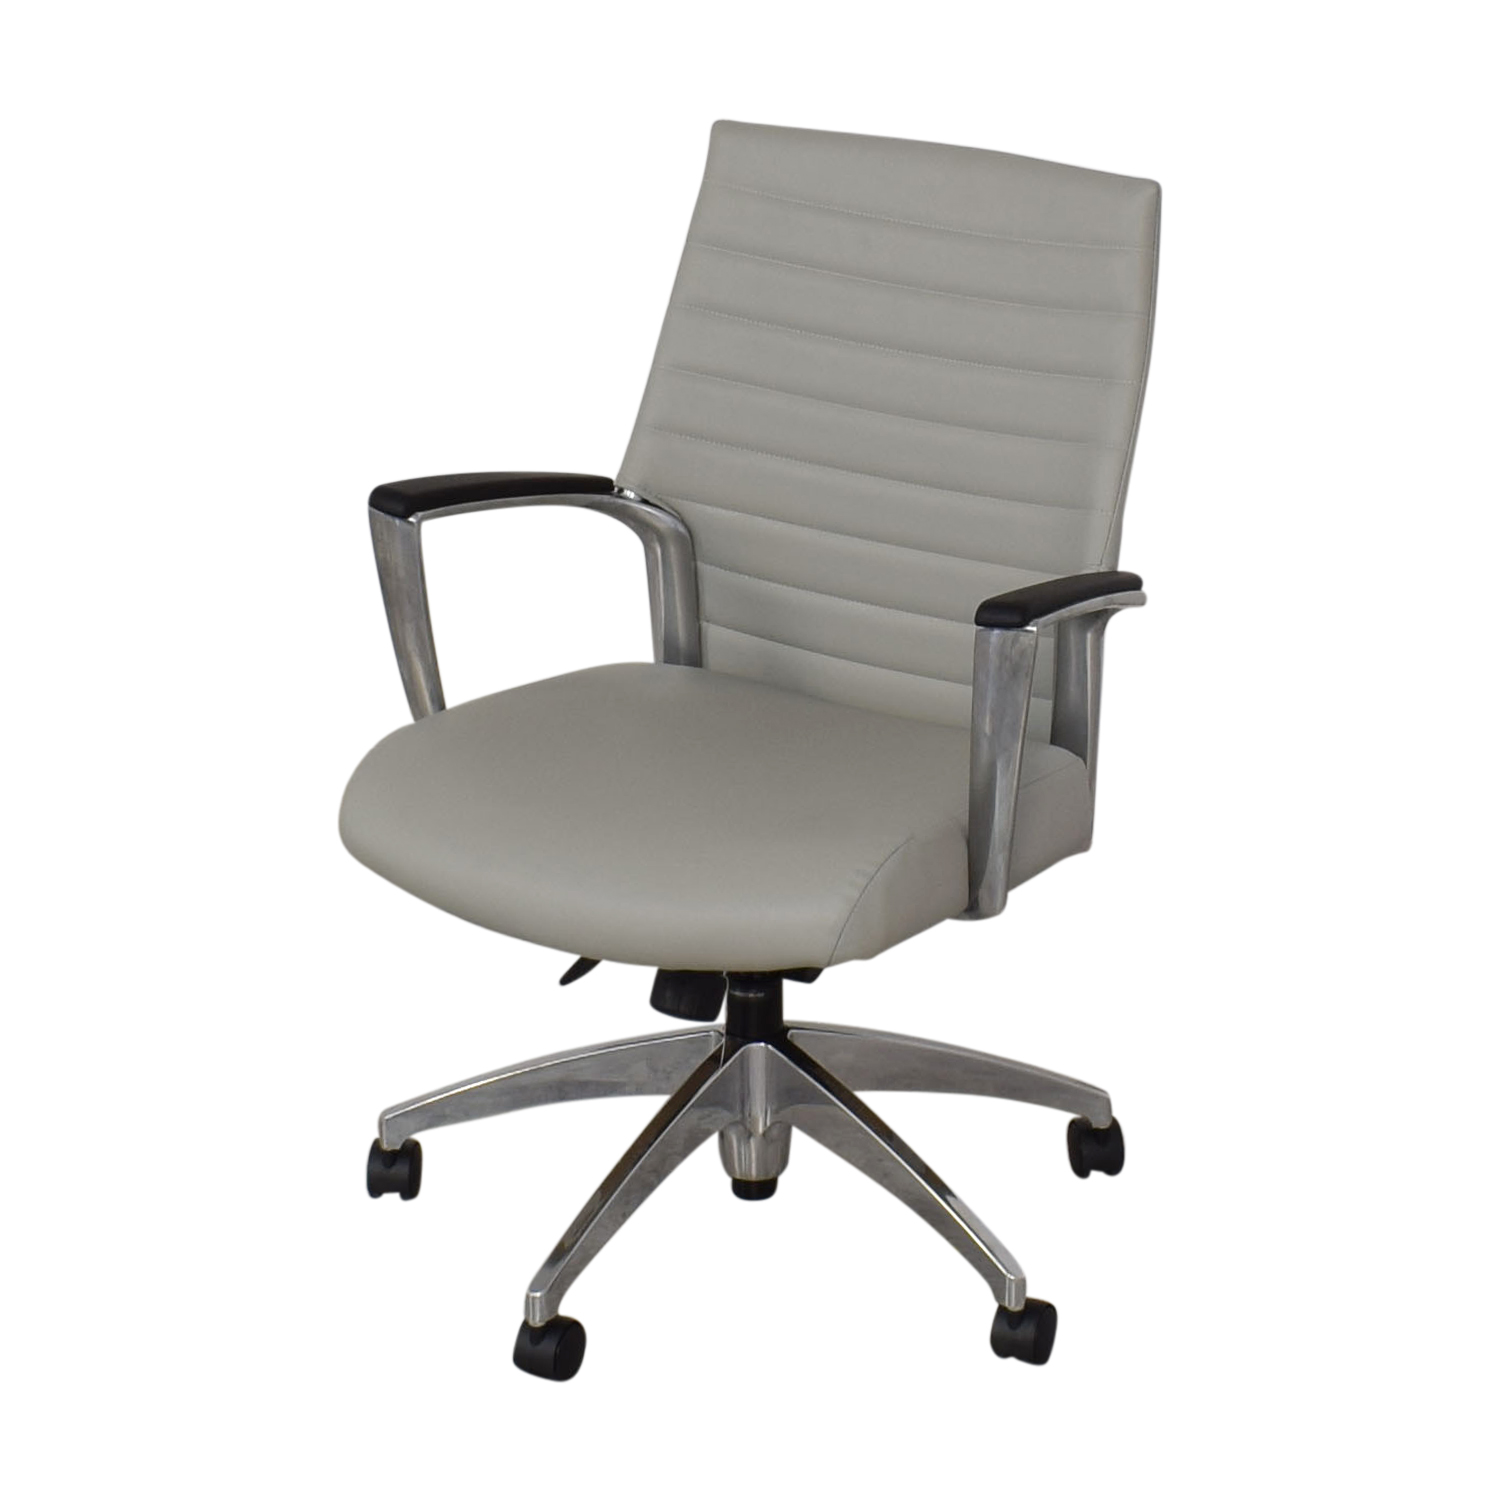 Global Global Accord Upholstered Medium Back Tilter Chair pa